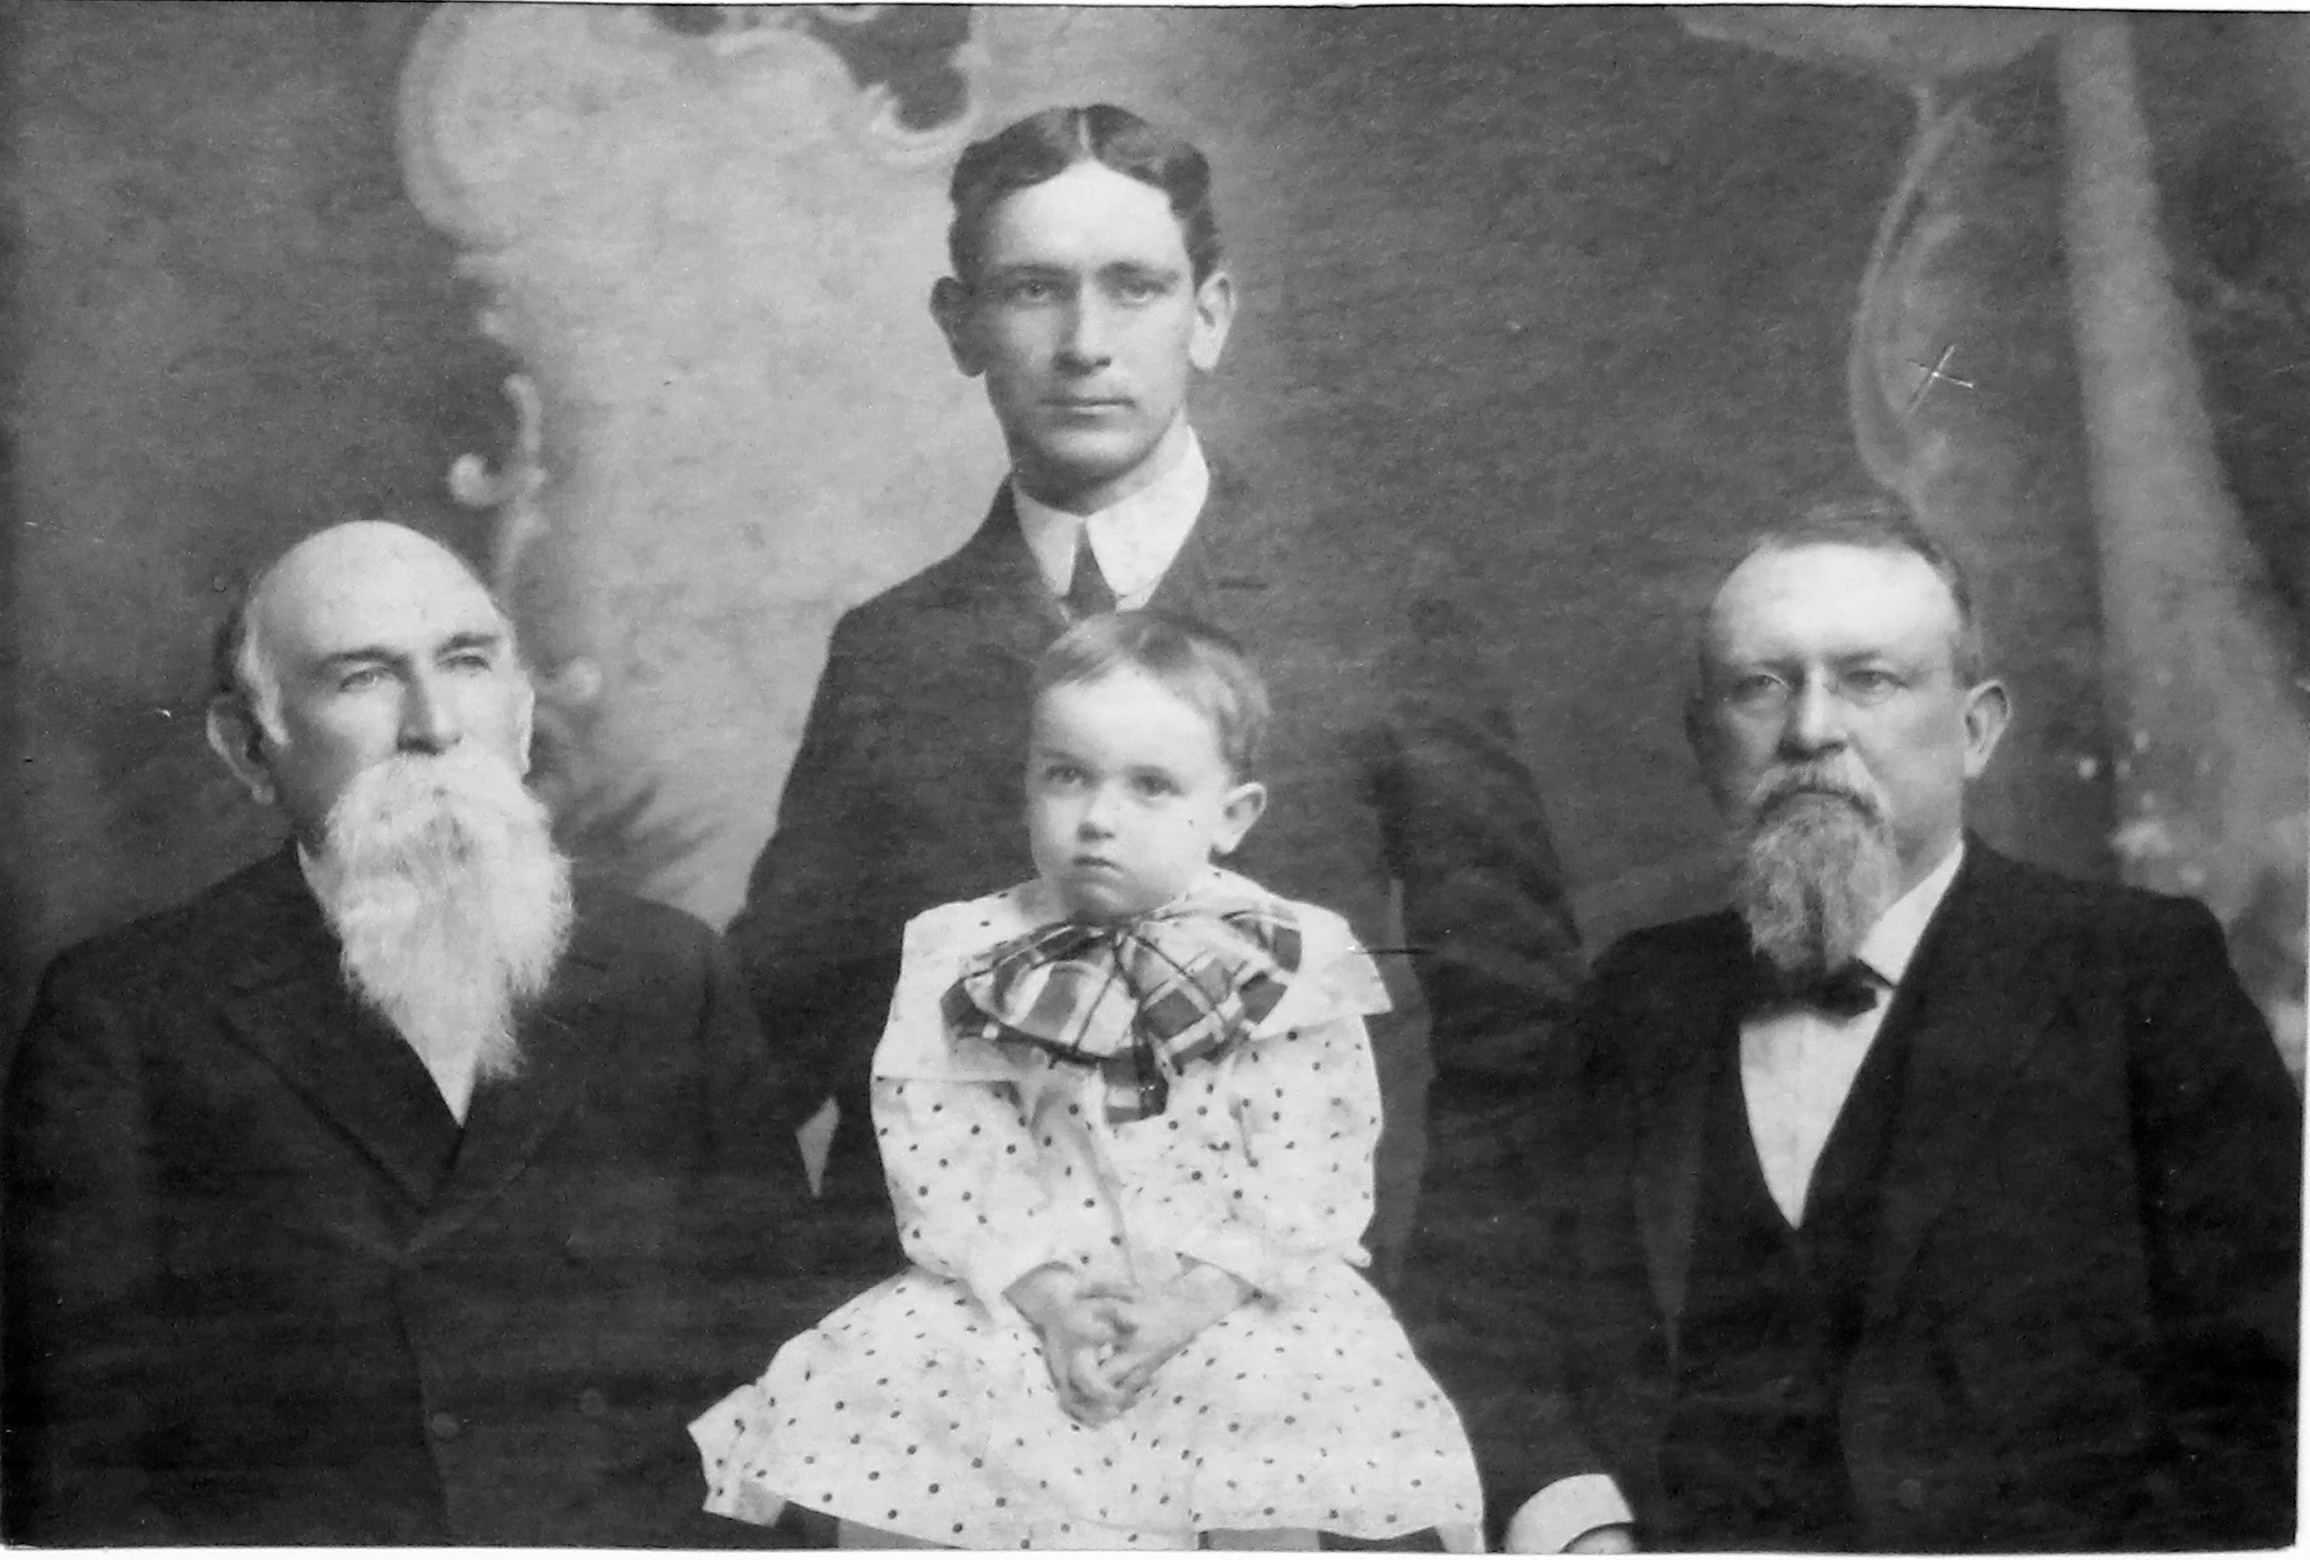 James Biggers Key with baby Jack B. Key and his father Howard W. Key.